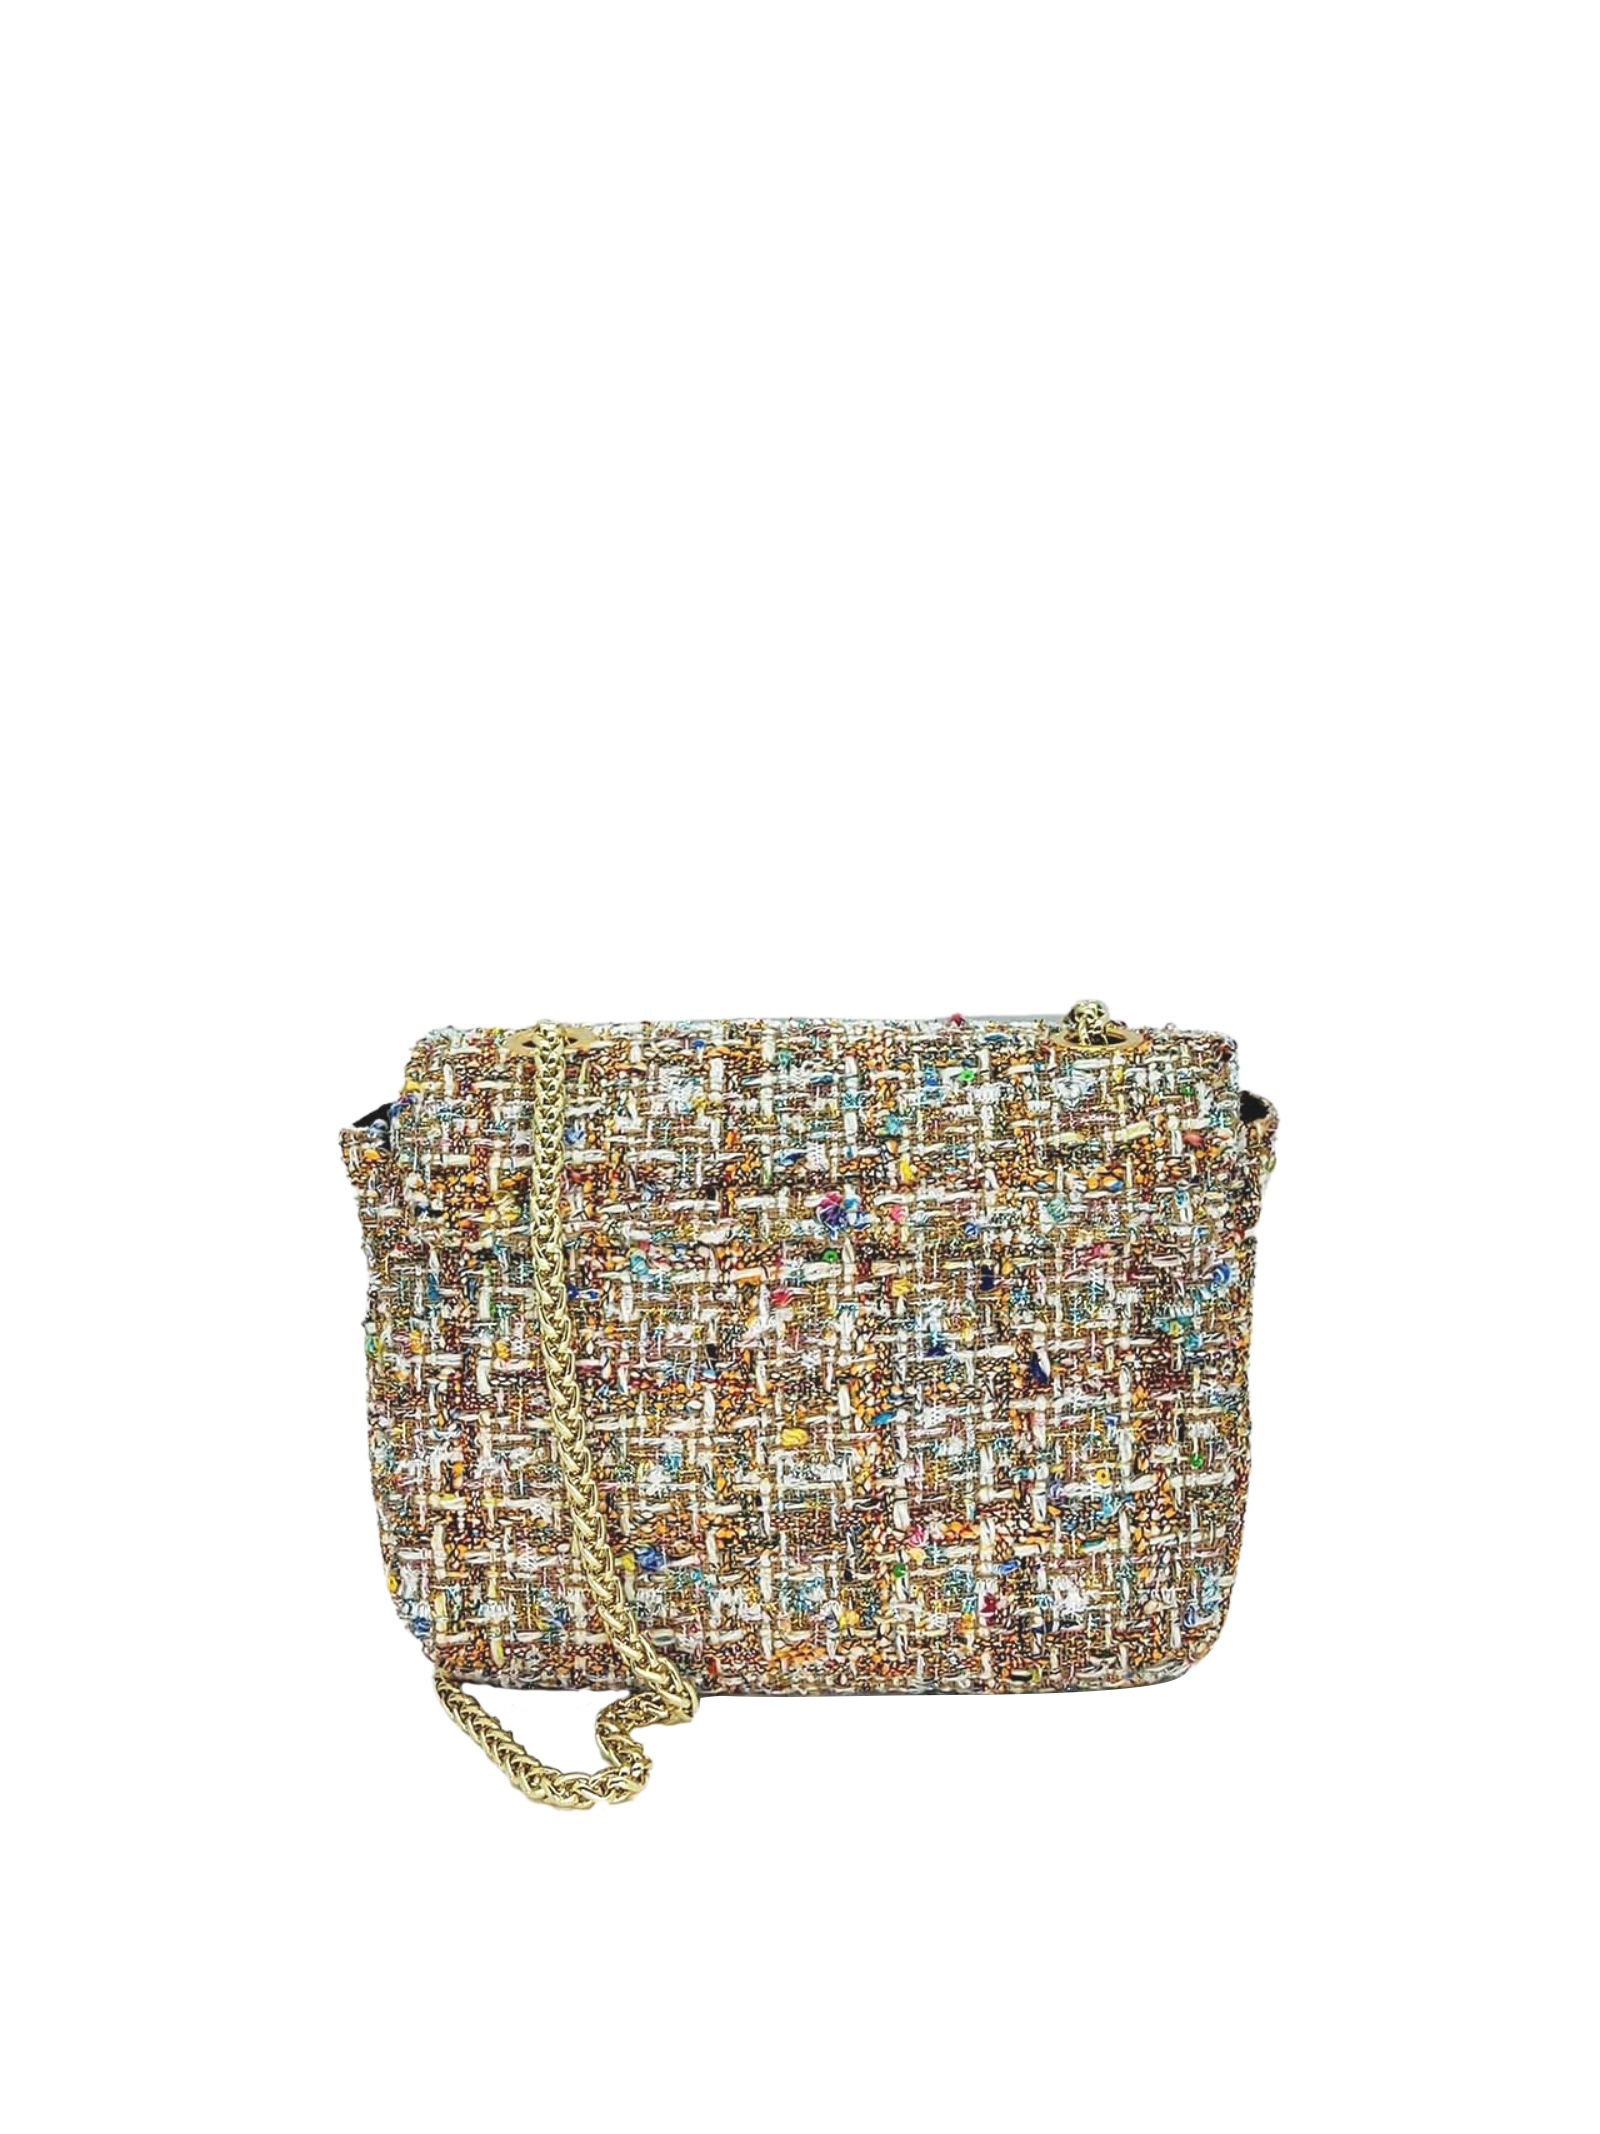 Women's Bags Clutch Bag in Champagne Fabric with Gold Chain Kassiopea | Bags and backpacks | URIEL607